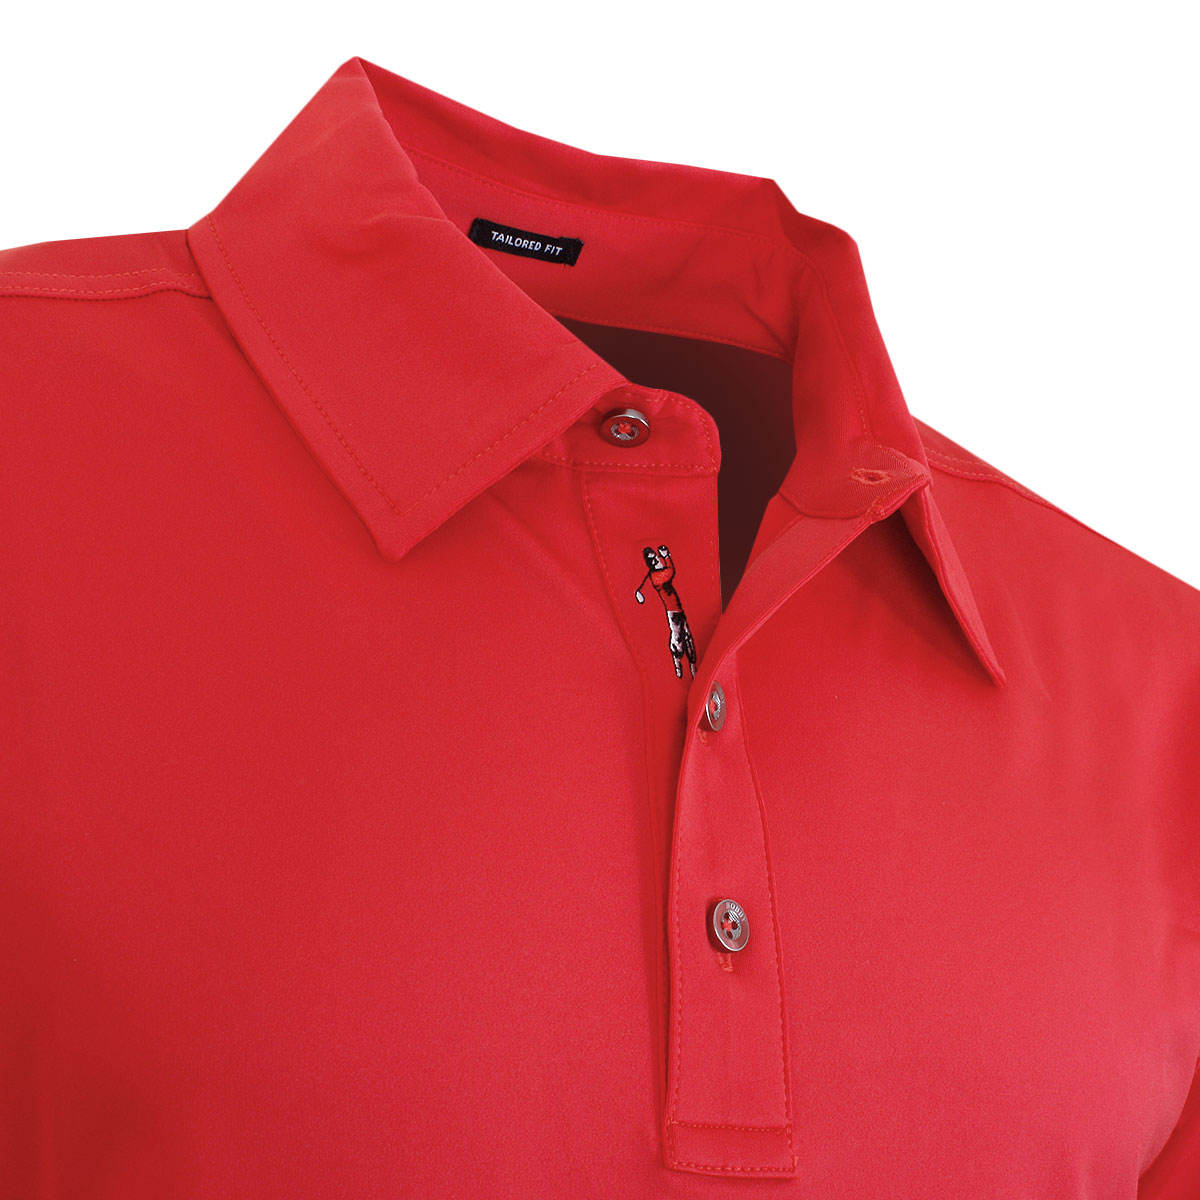 Bobby-Jones-Mens-XH2O-Perf-Solid-Jersey-TF-Golf-Polo-Shirt-69-OFF-RRP thumbnail 6